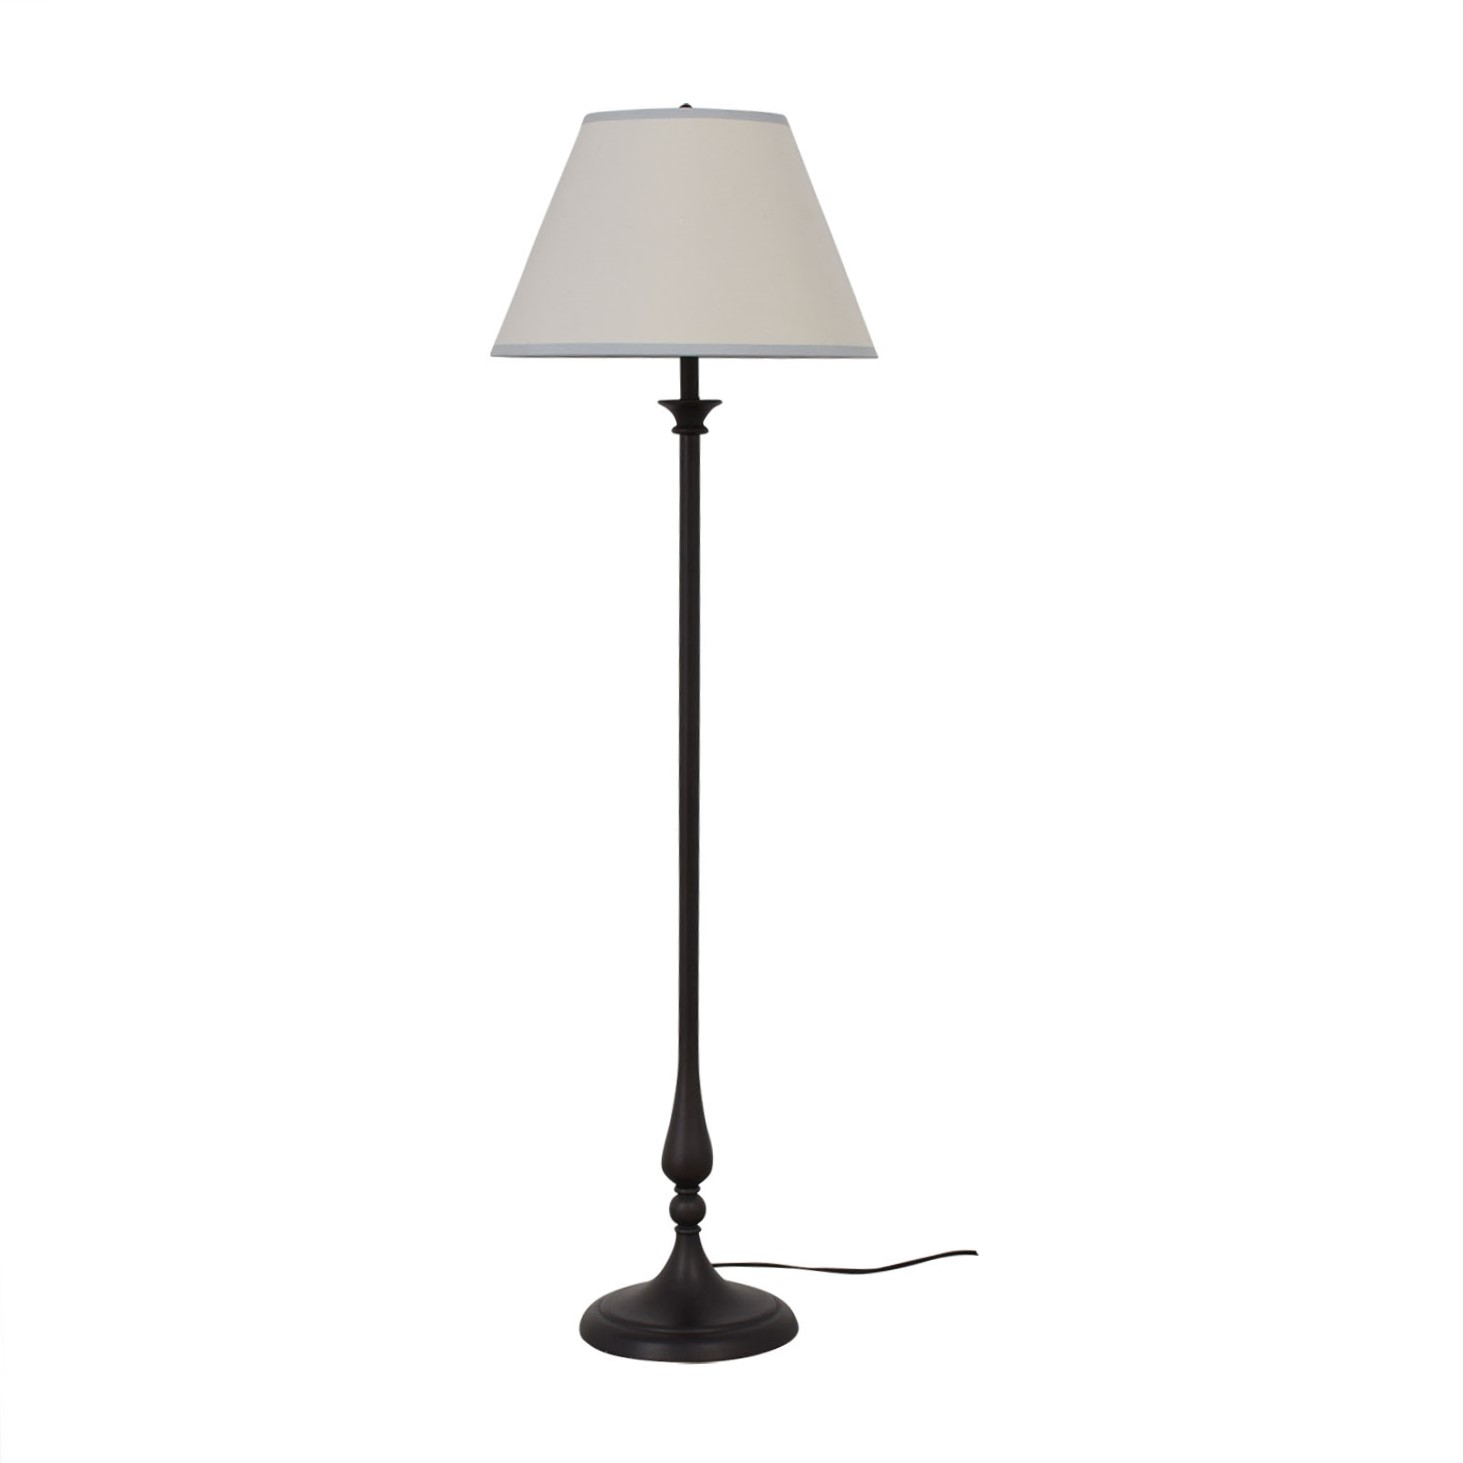 Pottery Barn Pottery Barn Floor Lamp Lamps